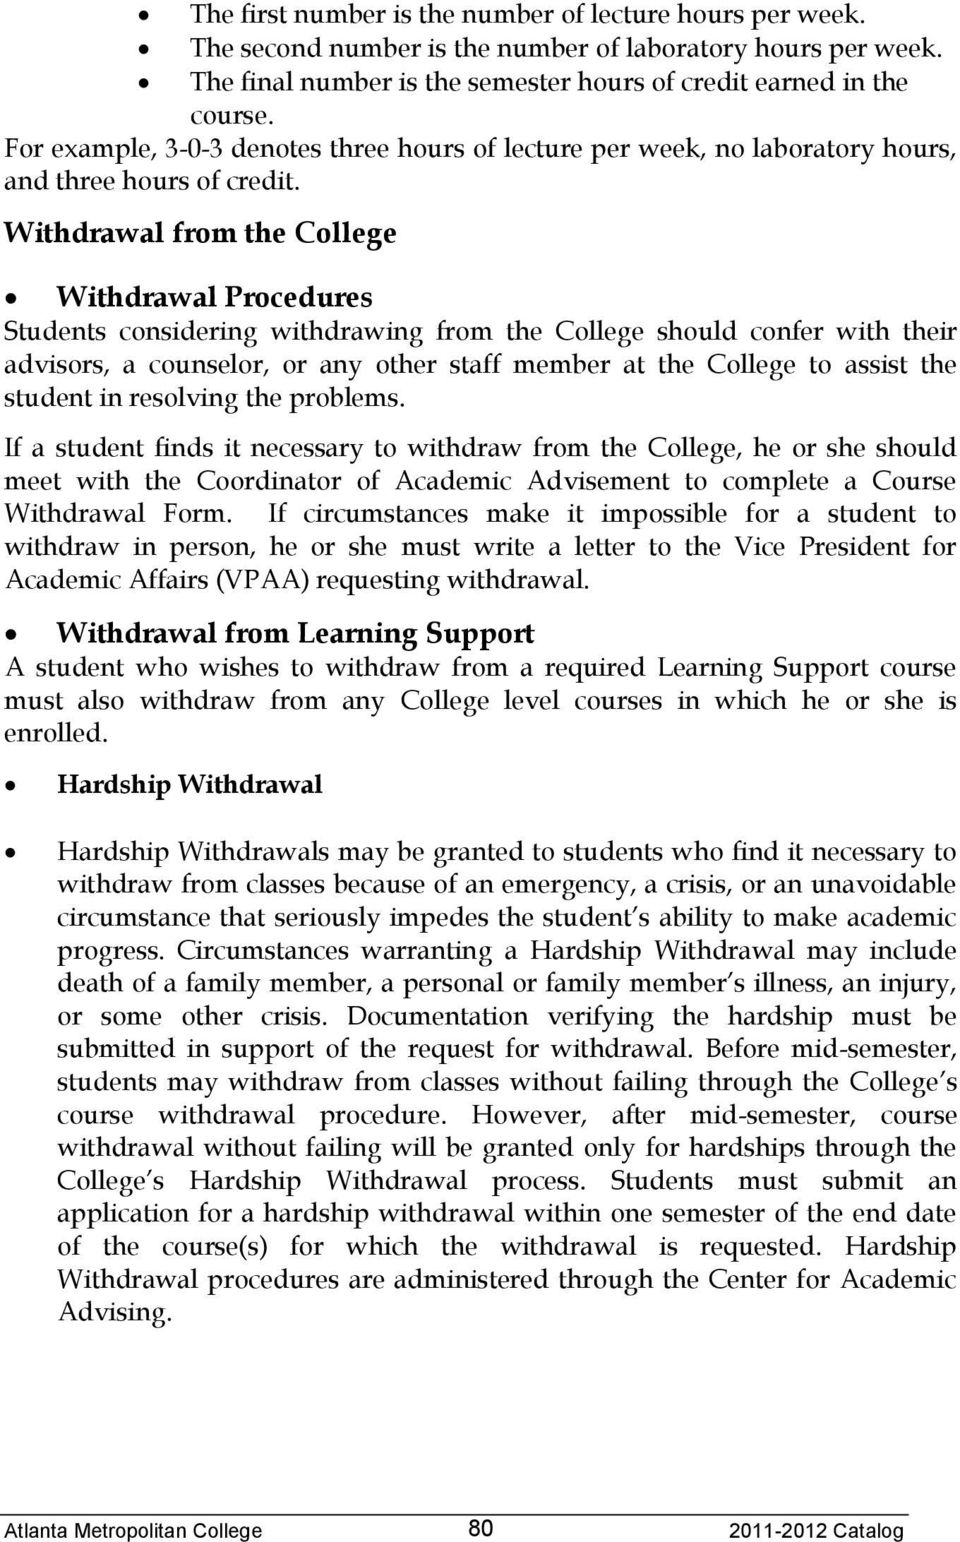 Withdrawal from the College Withdrawal Procedures Students considering withdrawing from the College should confer with their advisors, a counselor, or any other staff member at the College to assist